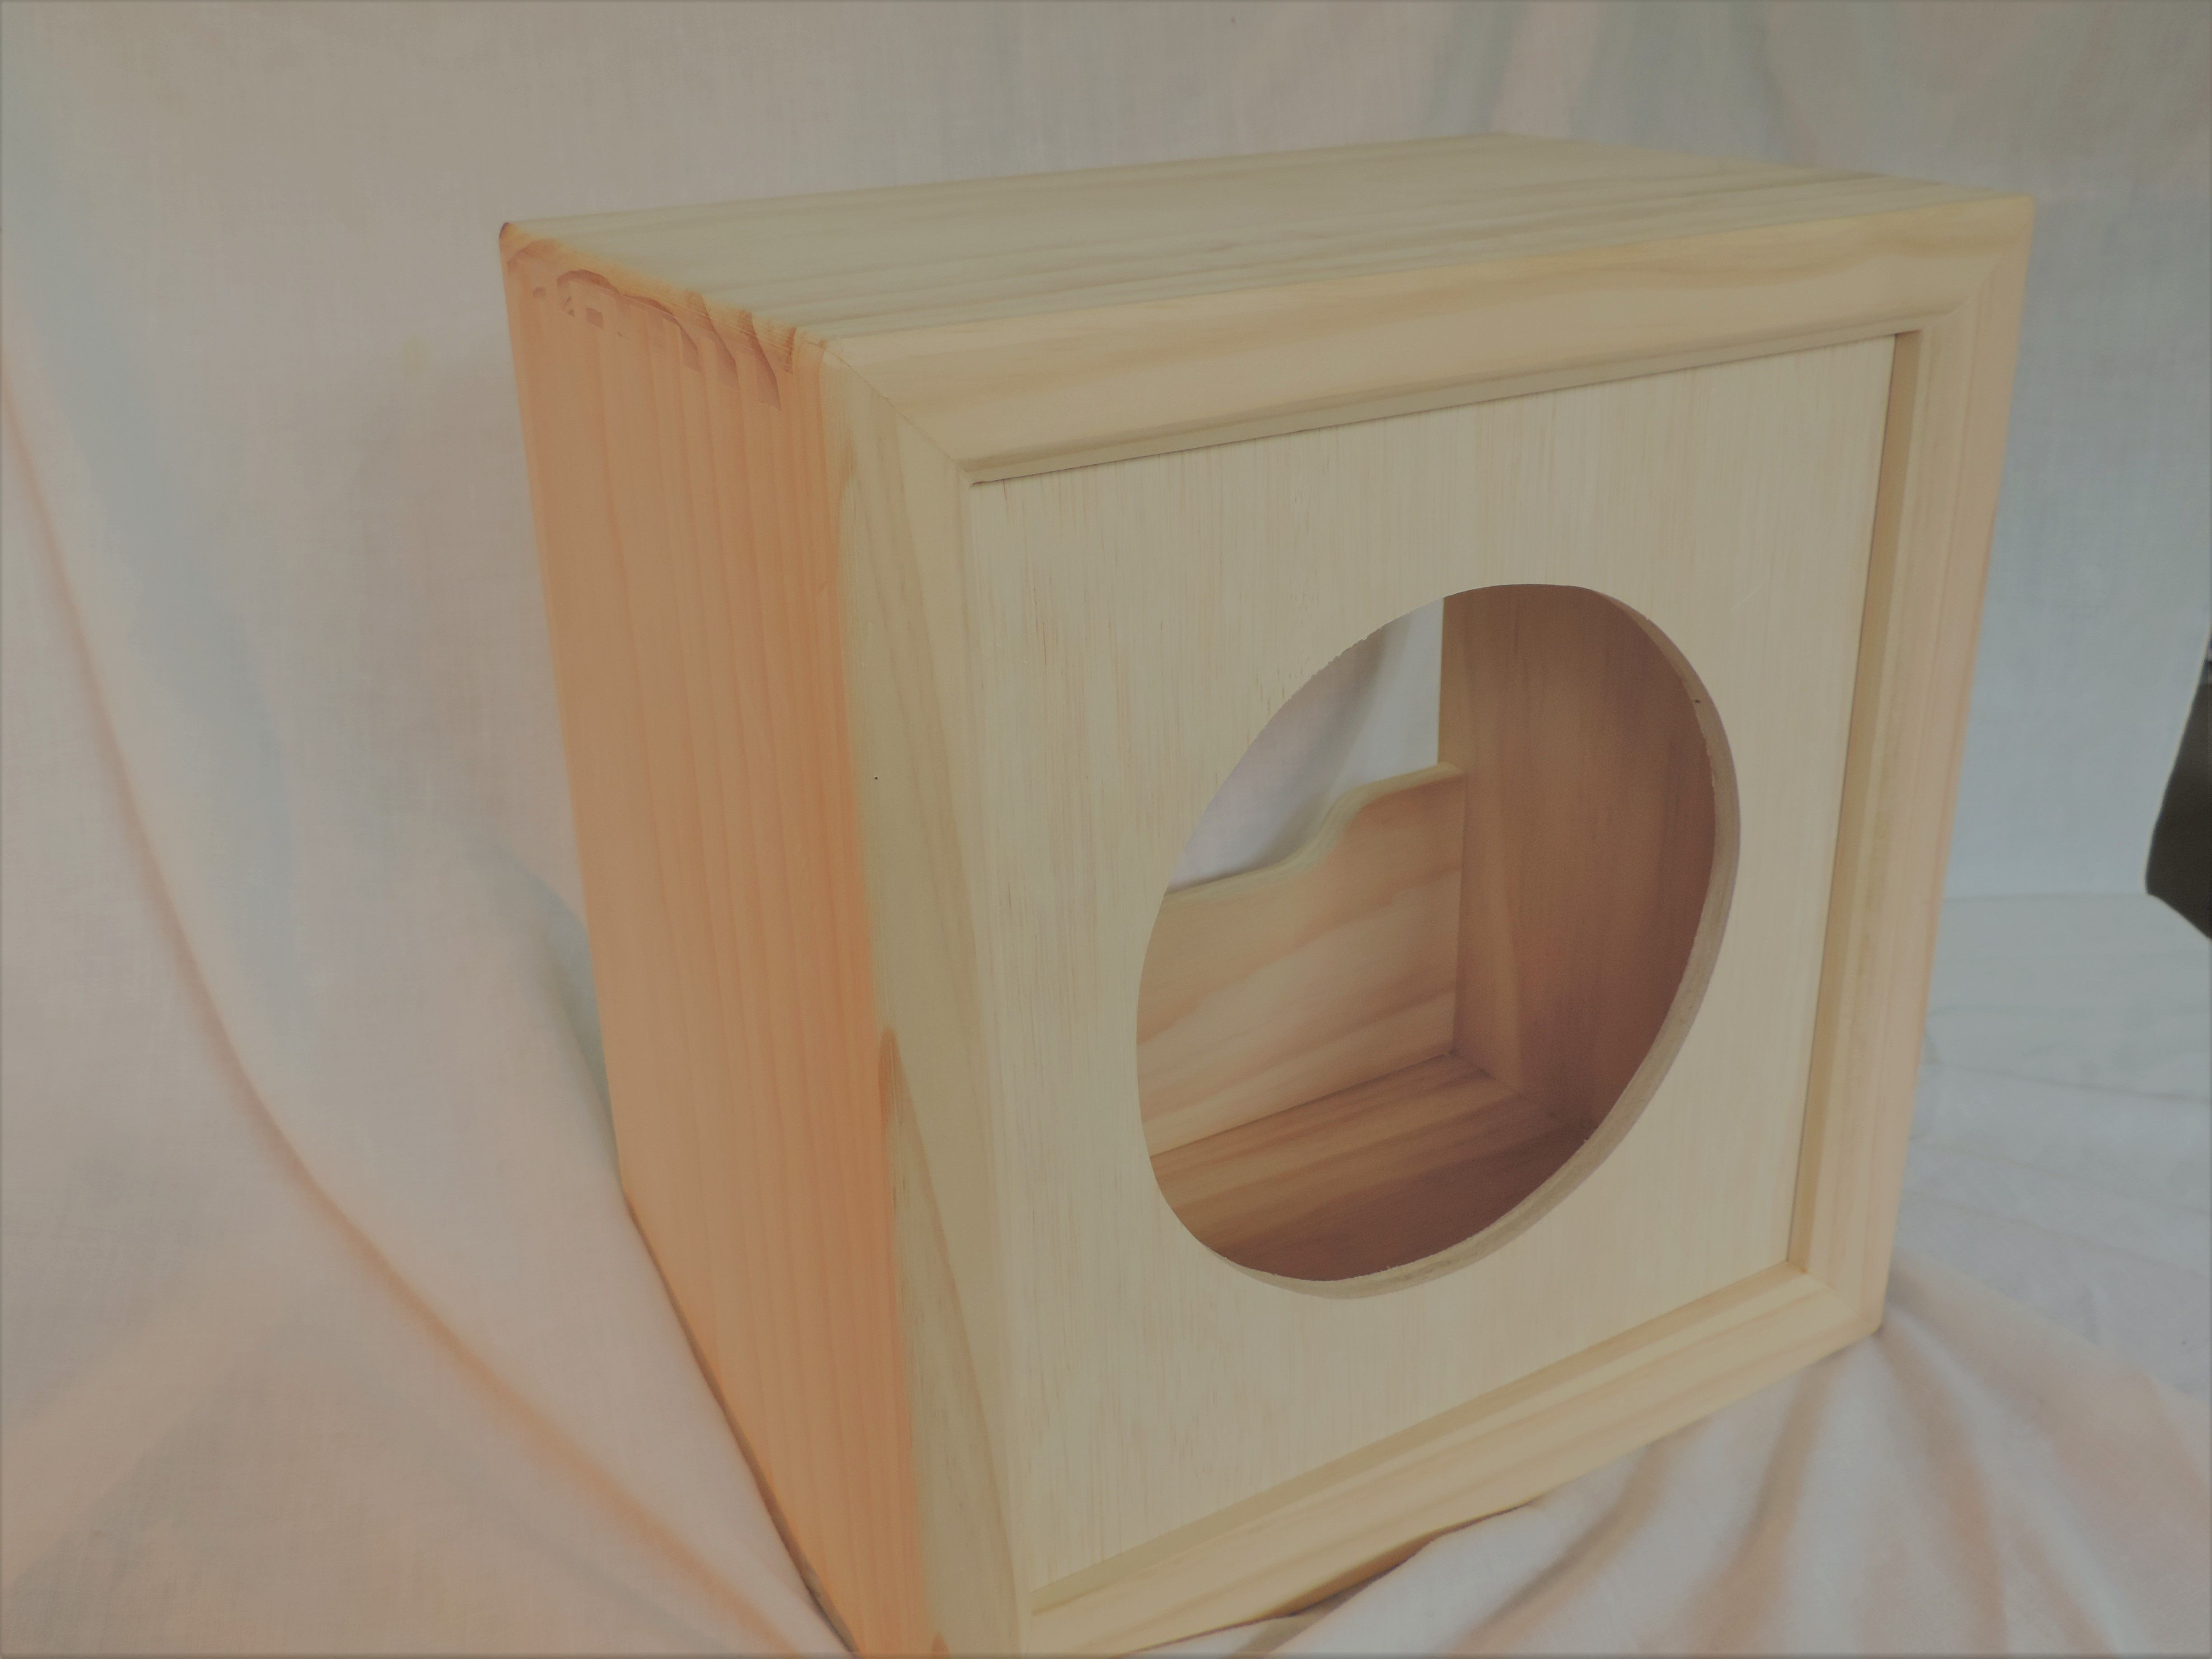 Naked Solid Pine 1x10 Guitar Cabinet Handmade by an American ...